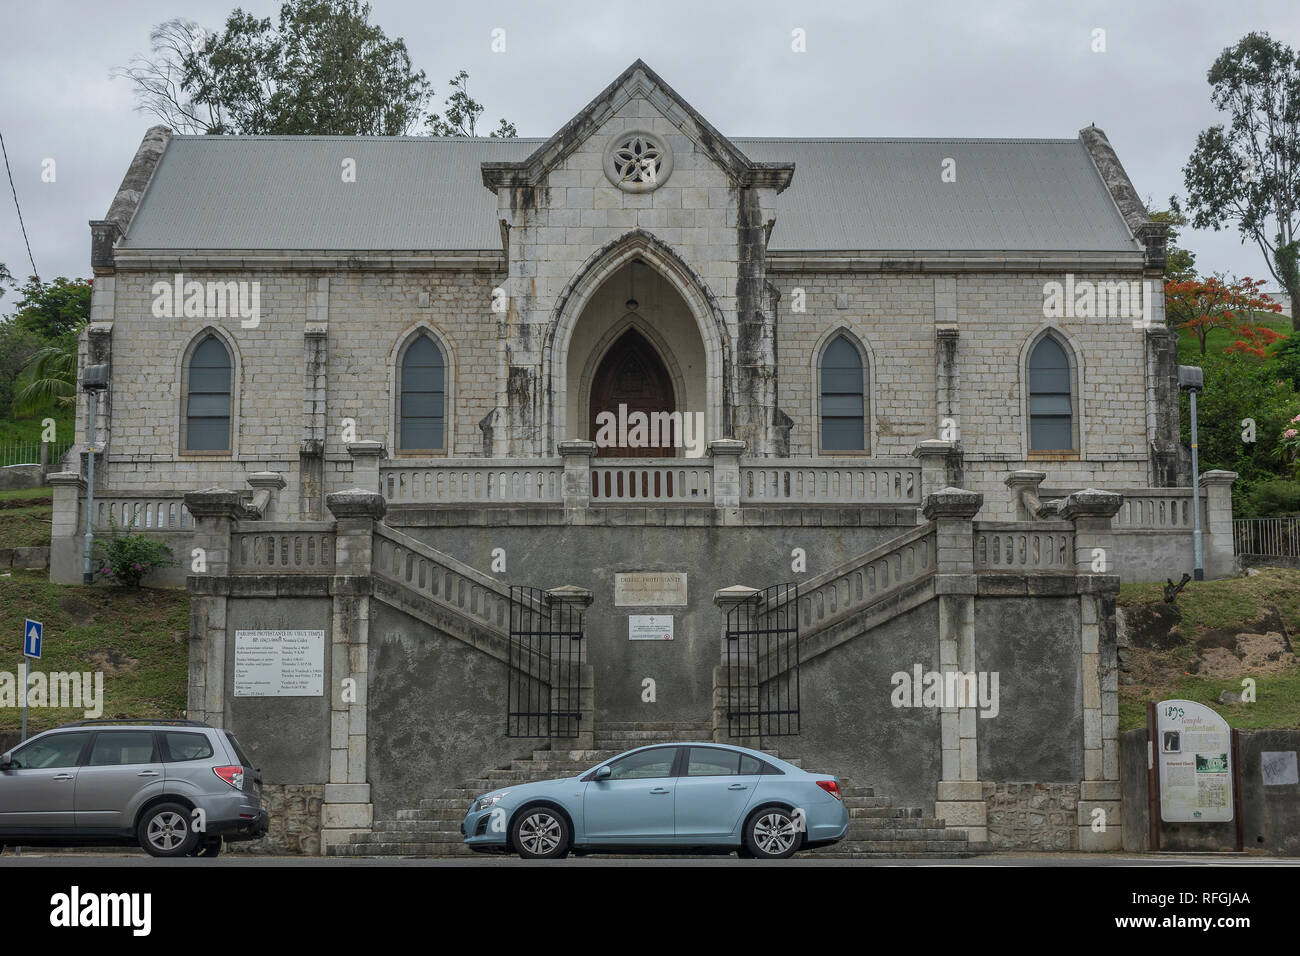 New Caledonia, Noumea, Old Temple, Protestant church - Stock Image